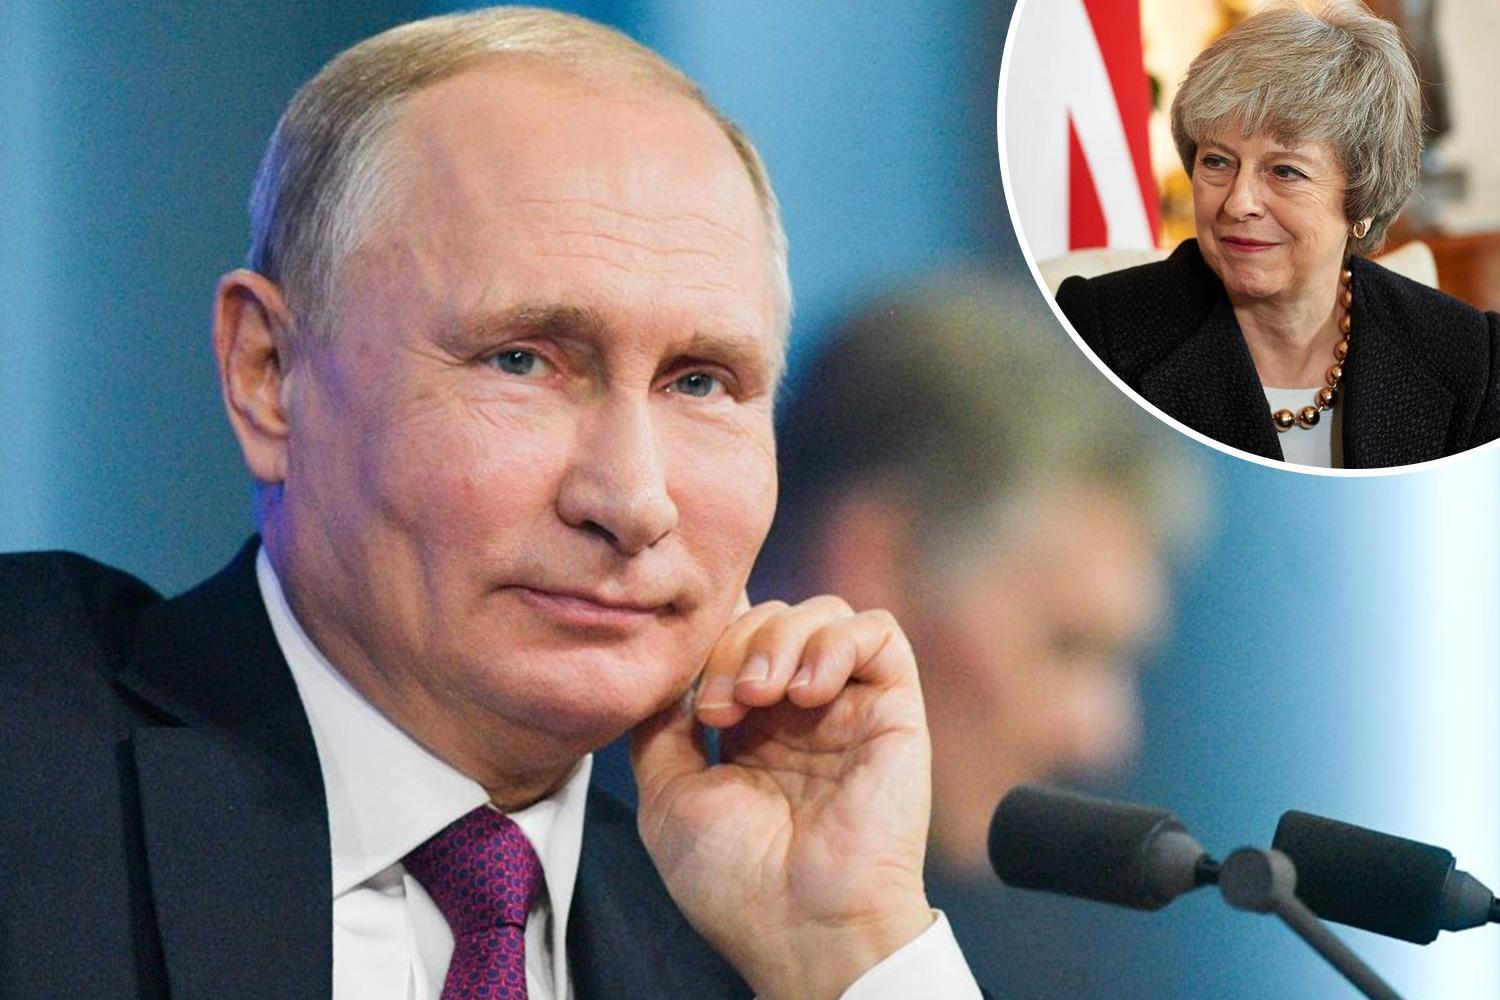 Vladimir Putin backs Theresa May over Brexit slamming second vote as 'disrespectful to voters'